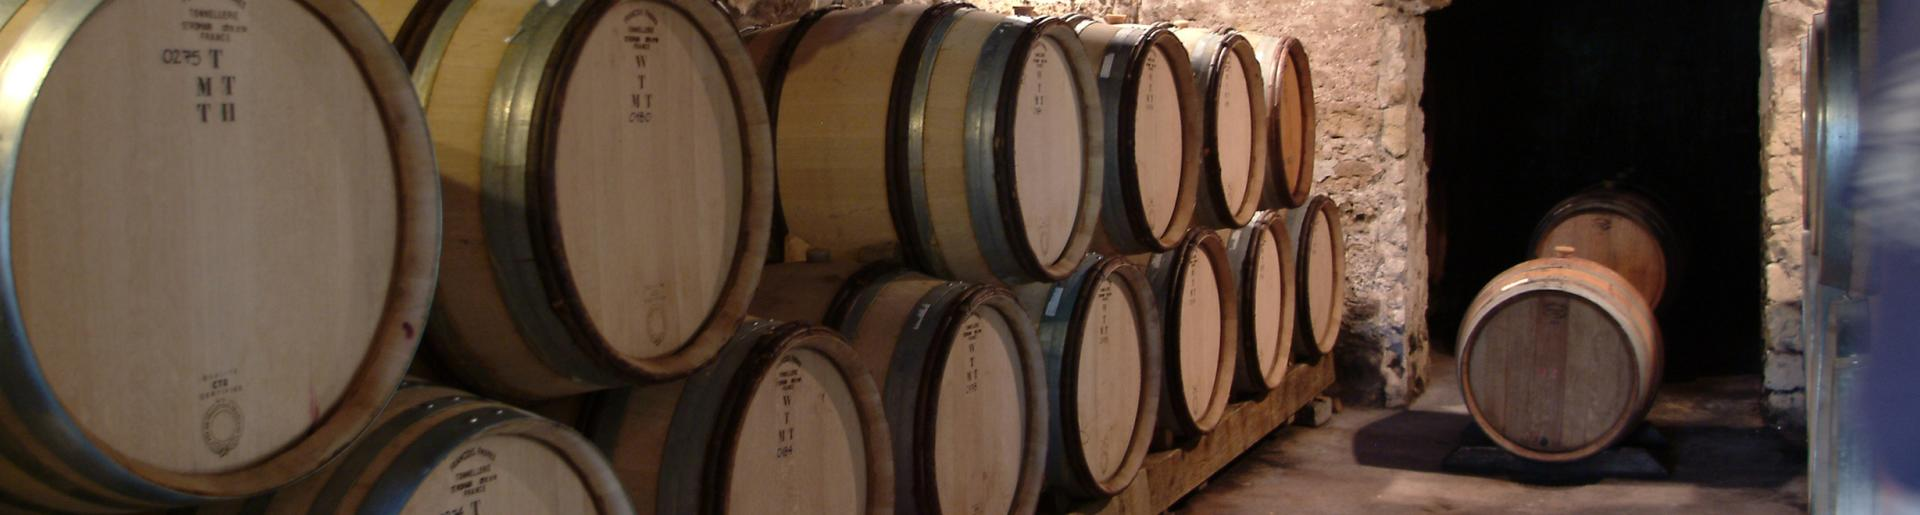 Wine barrels at Wollersheim Winery